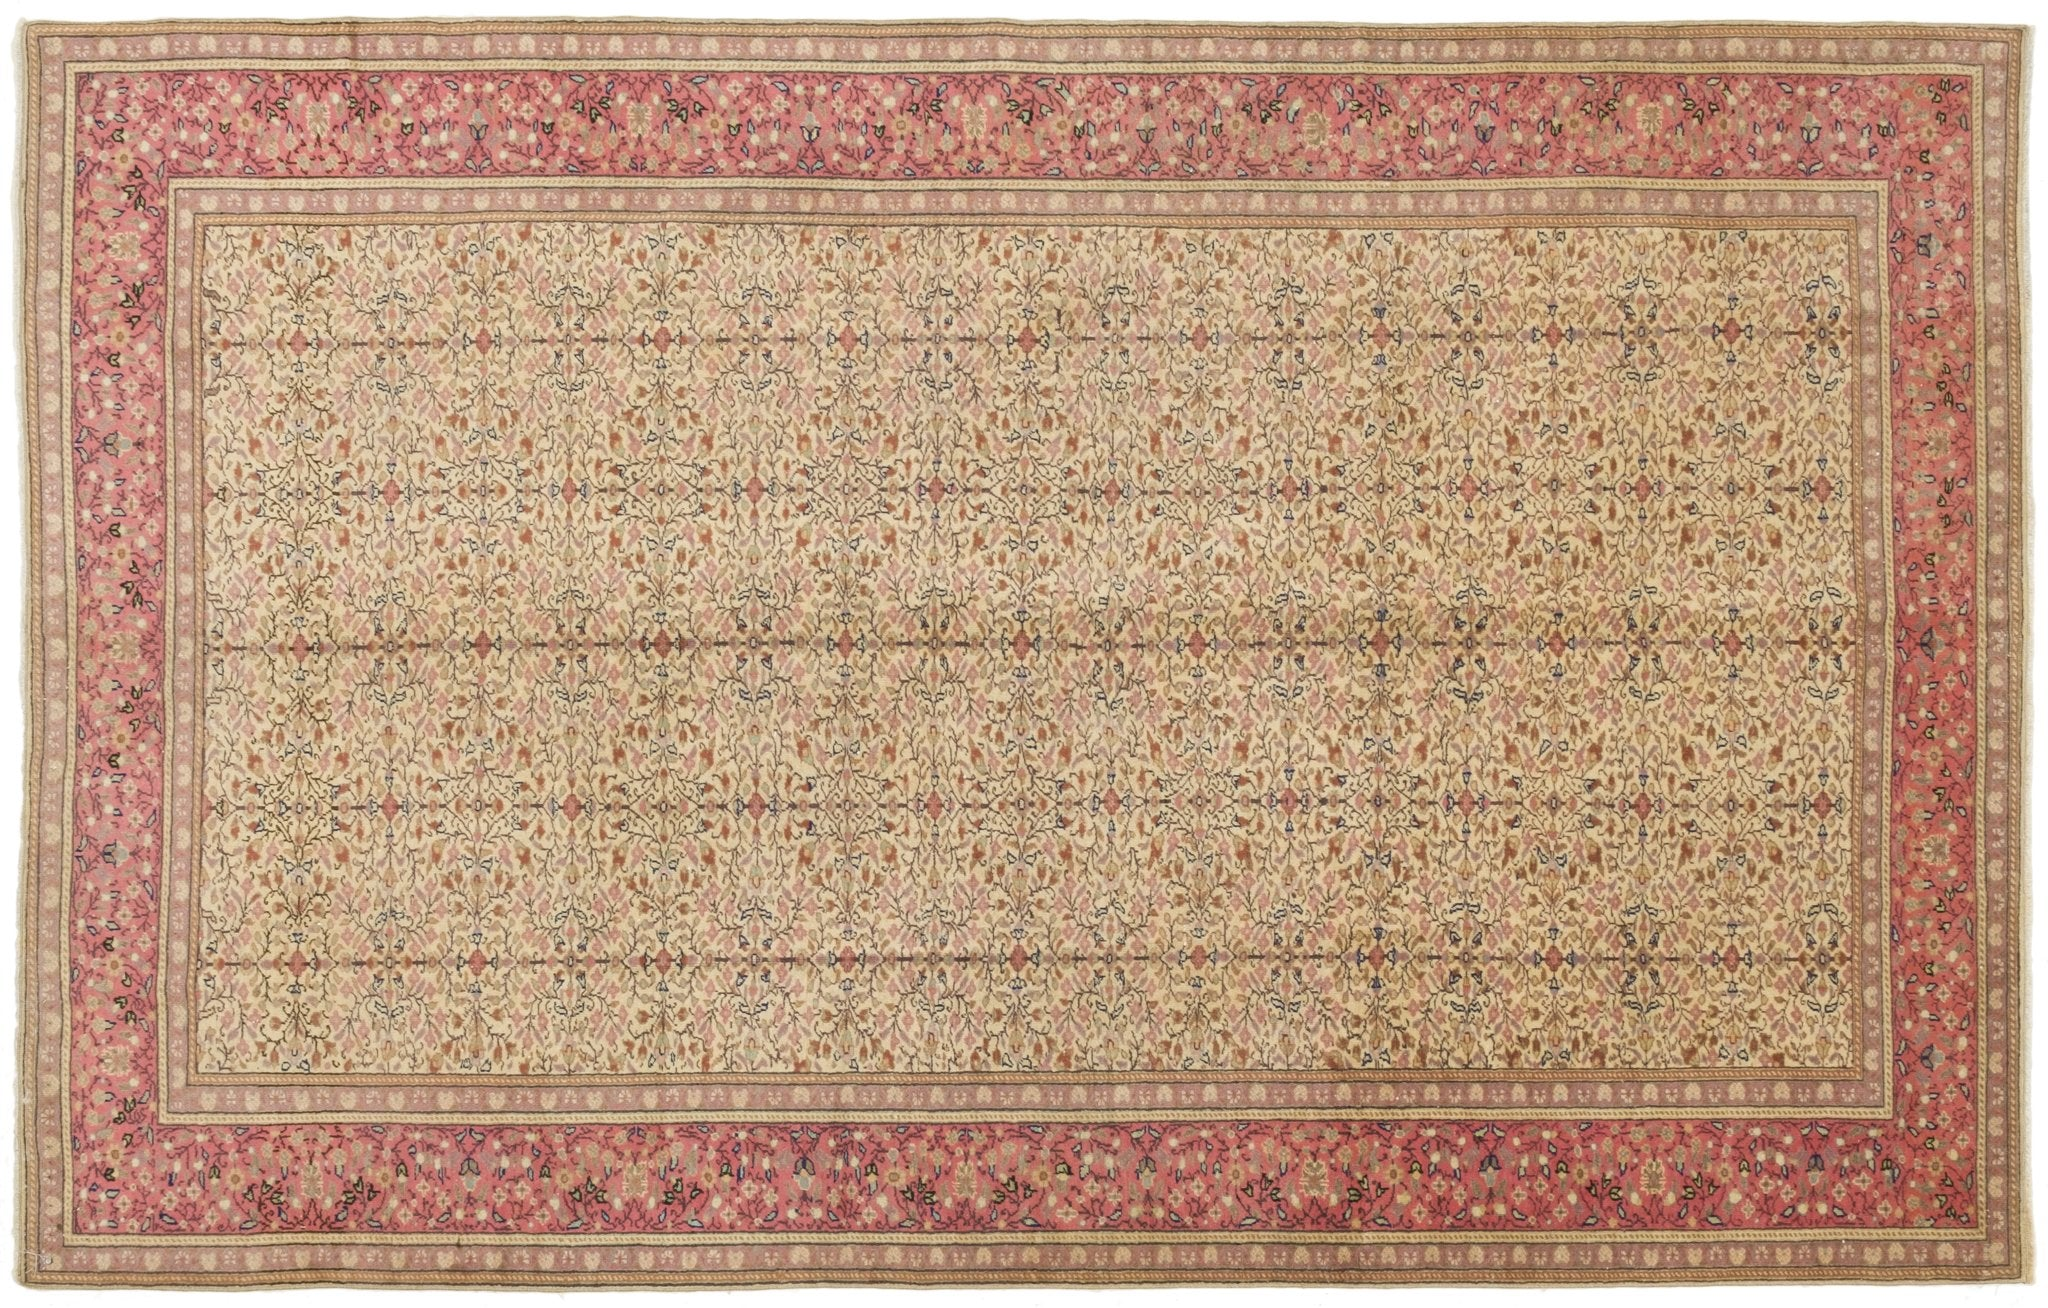 Vintage Turkish Rug Dobroslava